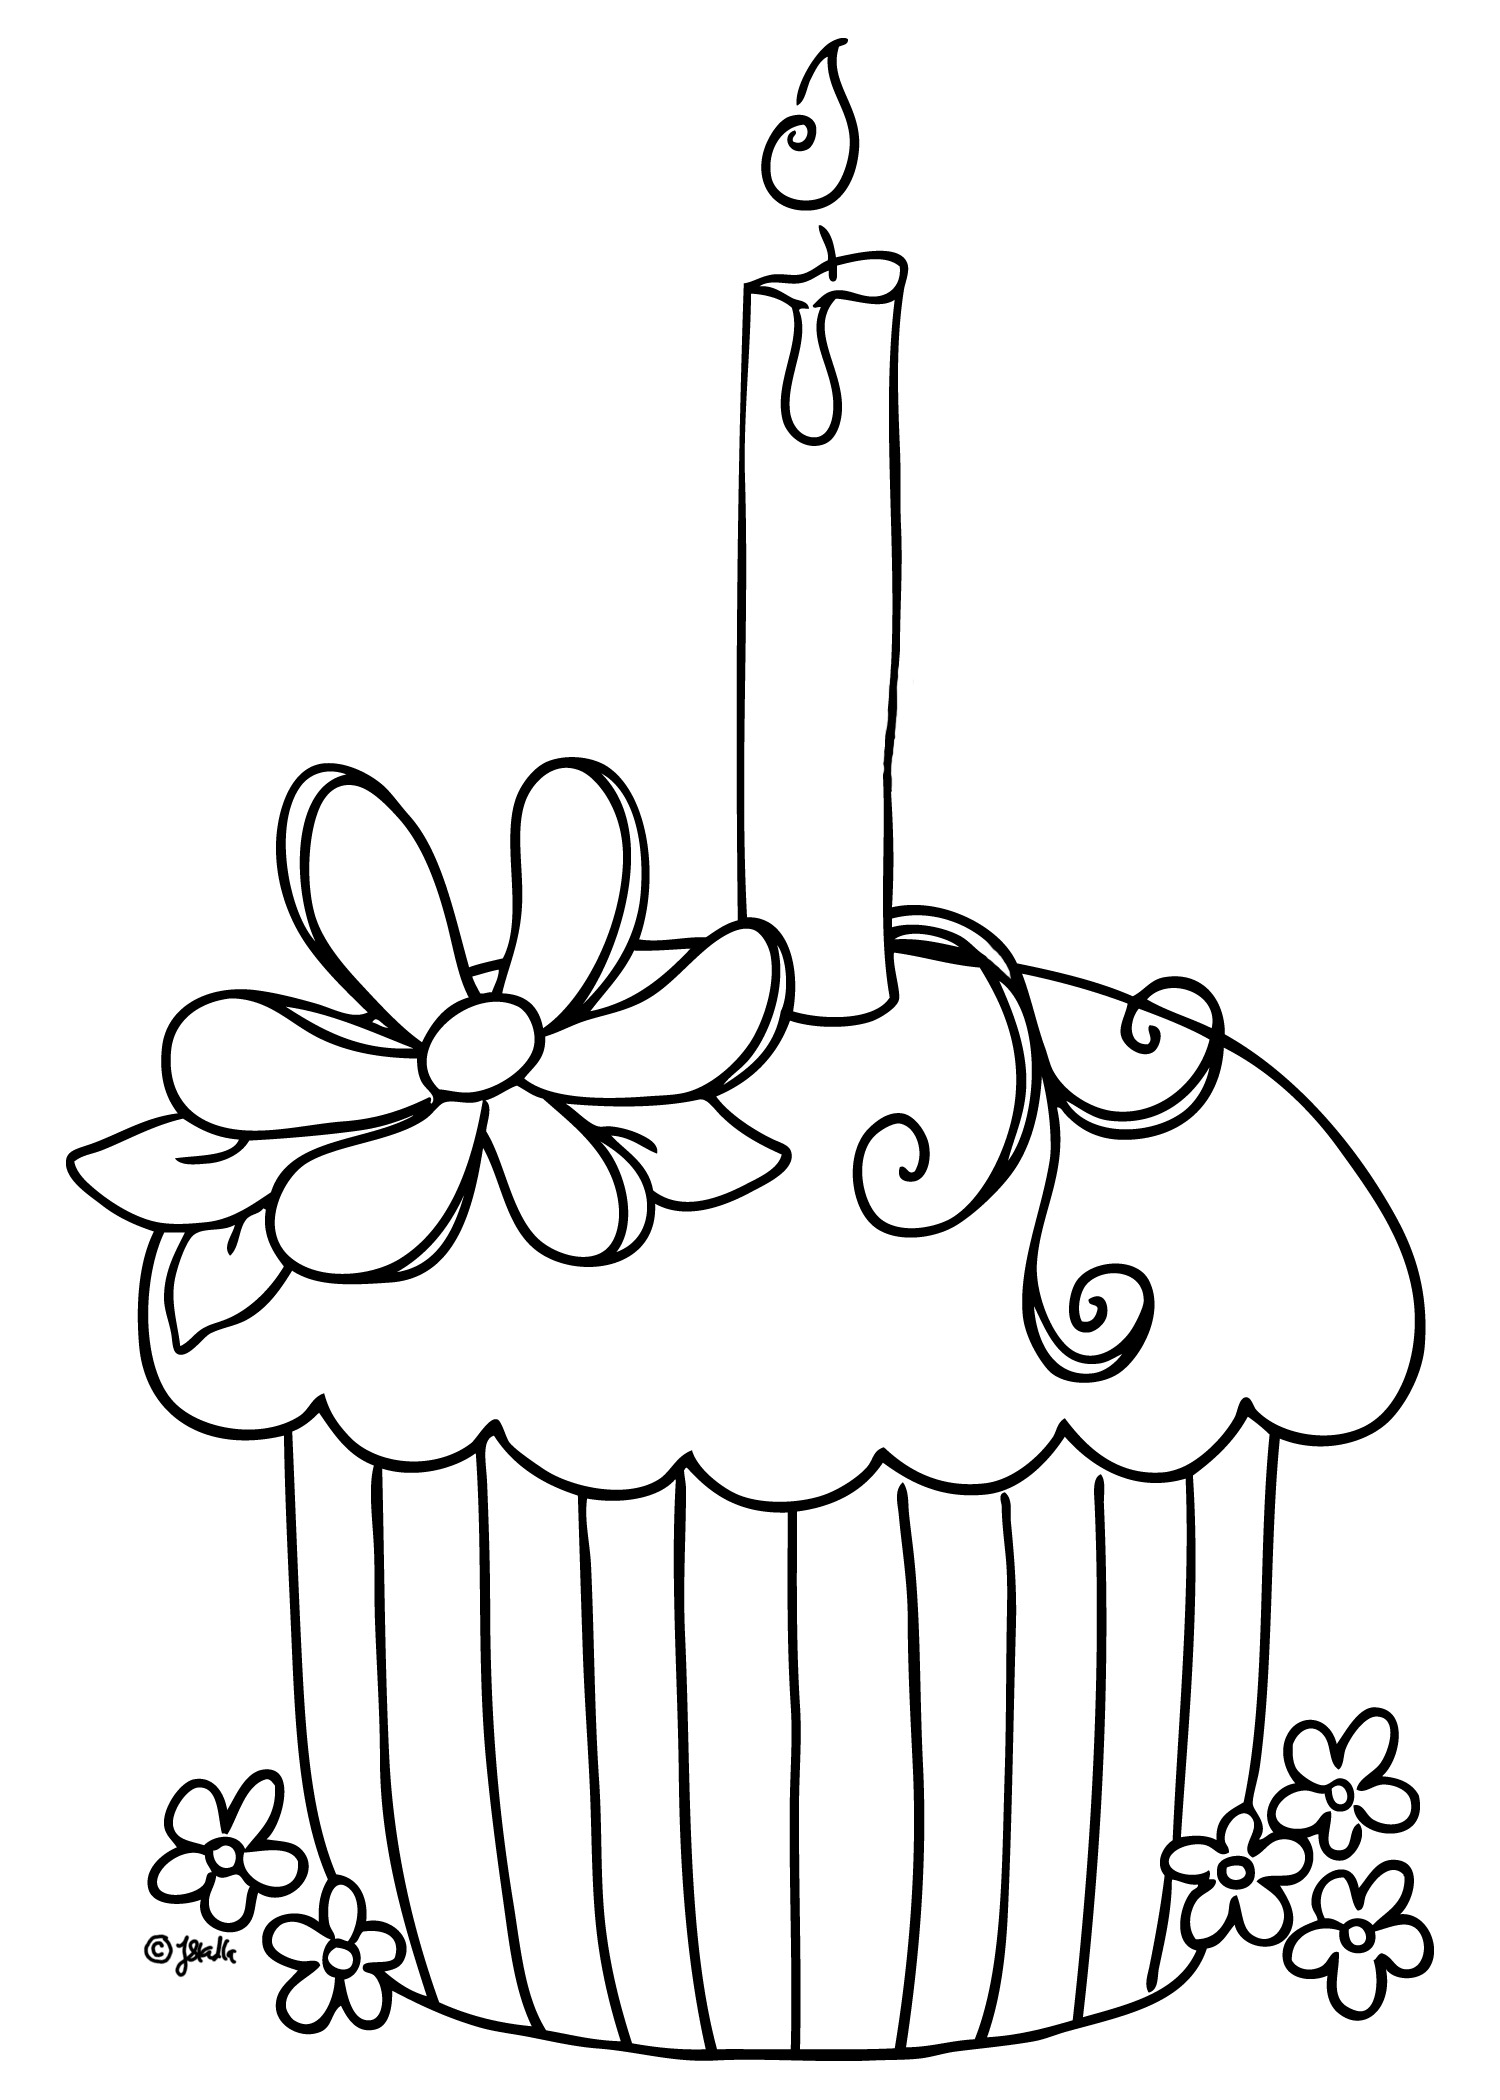 cupcake colouring template cupcakes coloring pages cupcake template colouring